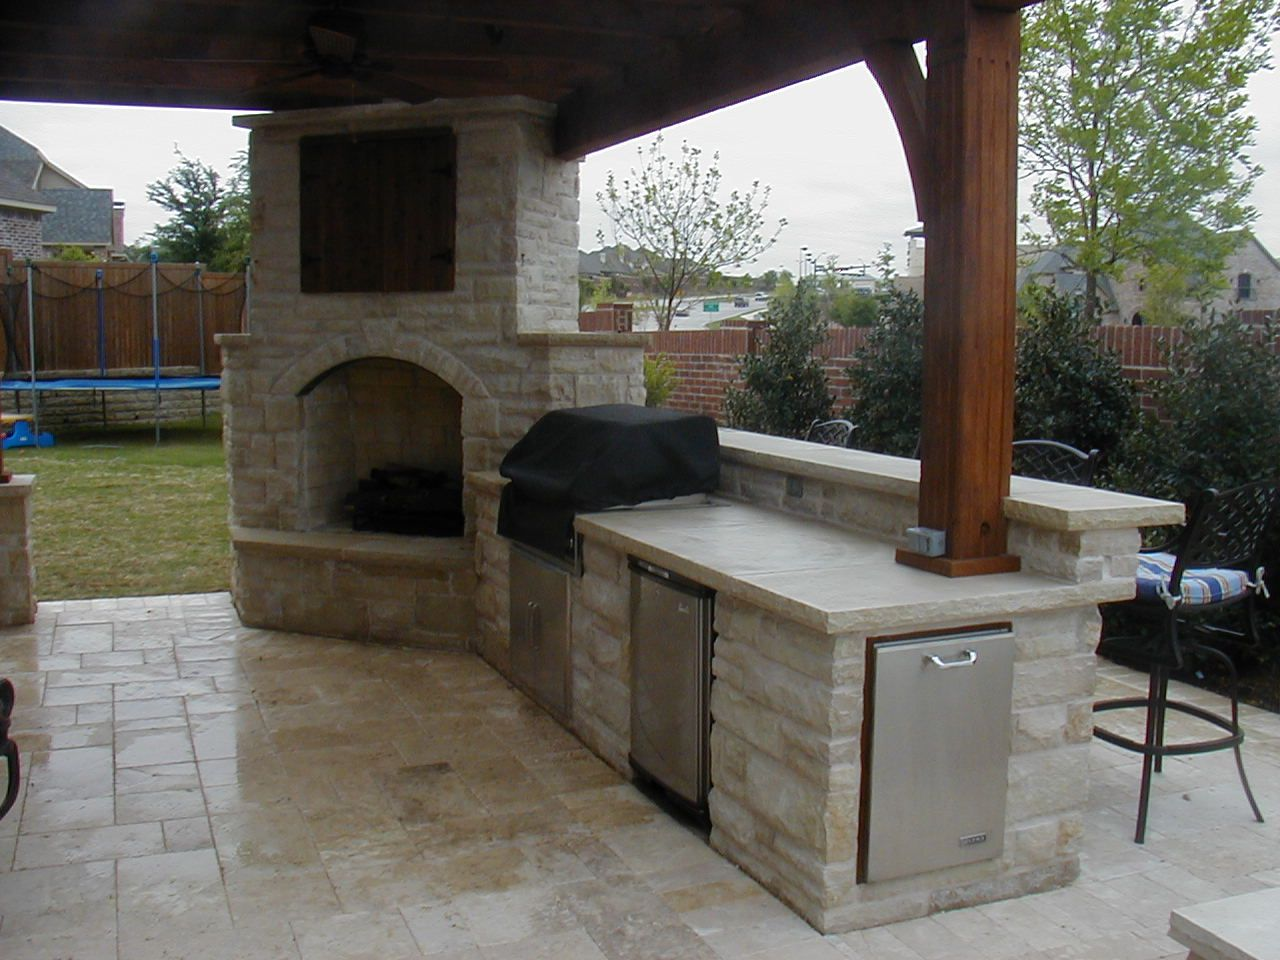 Outdoor Fireplace with covered TV, connects to outdoor ... on Covered Outdoor Kitchen With Fireplace id=46409